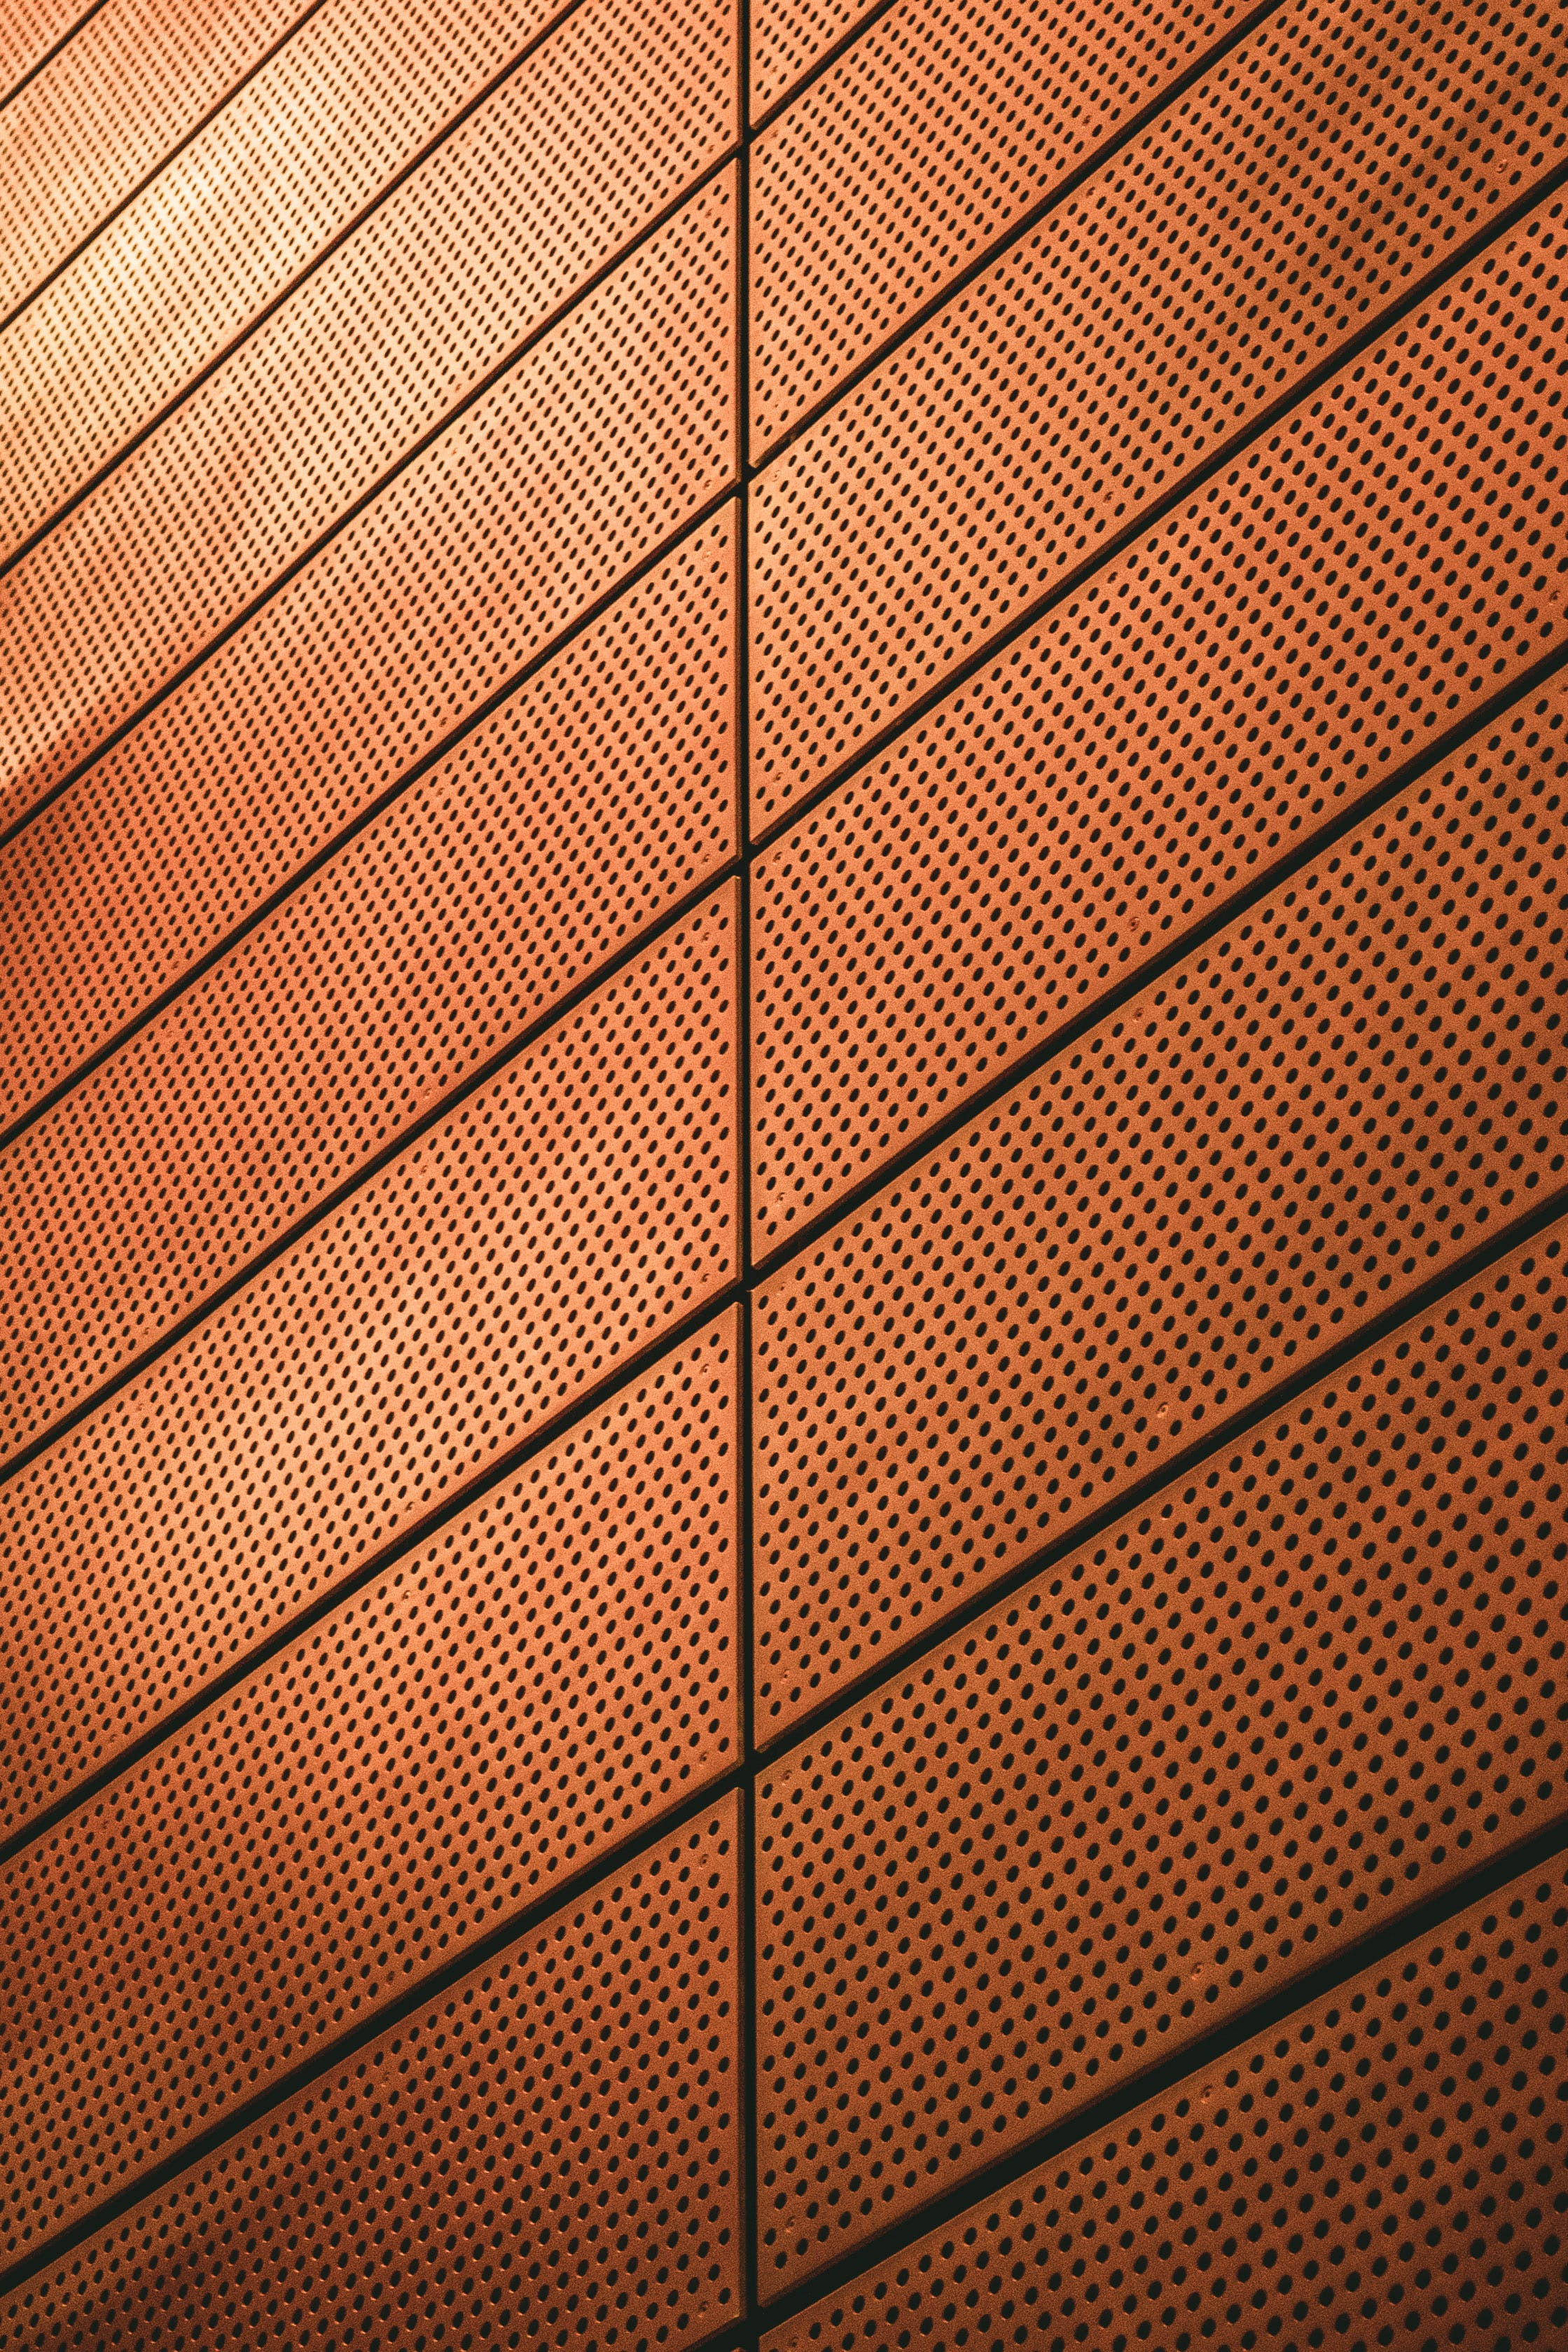 Brown Wall Designed With Holes